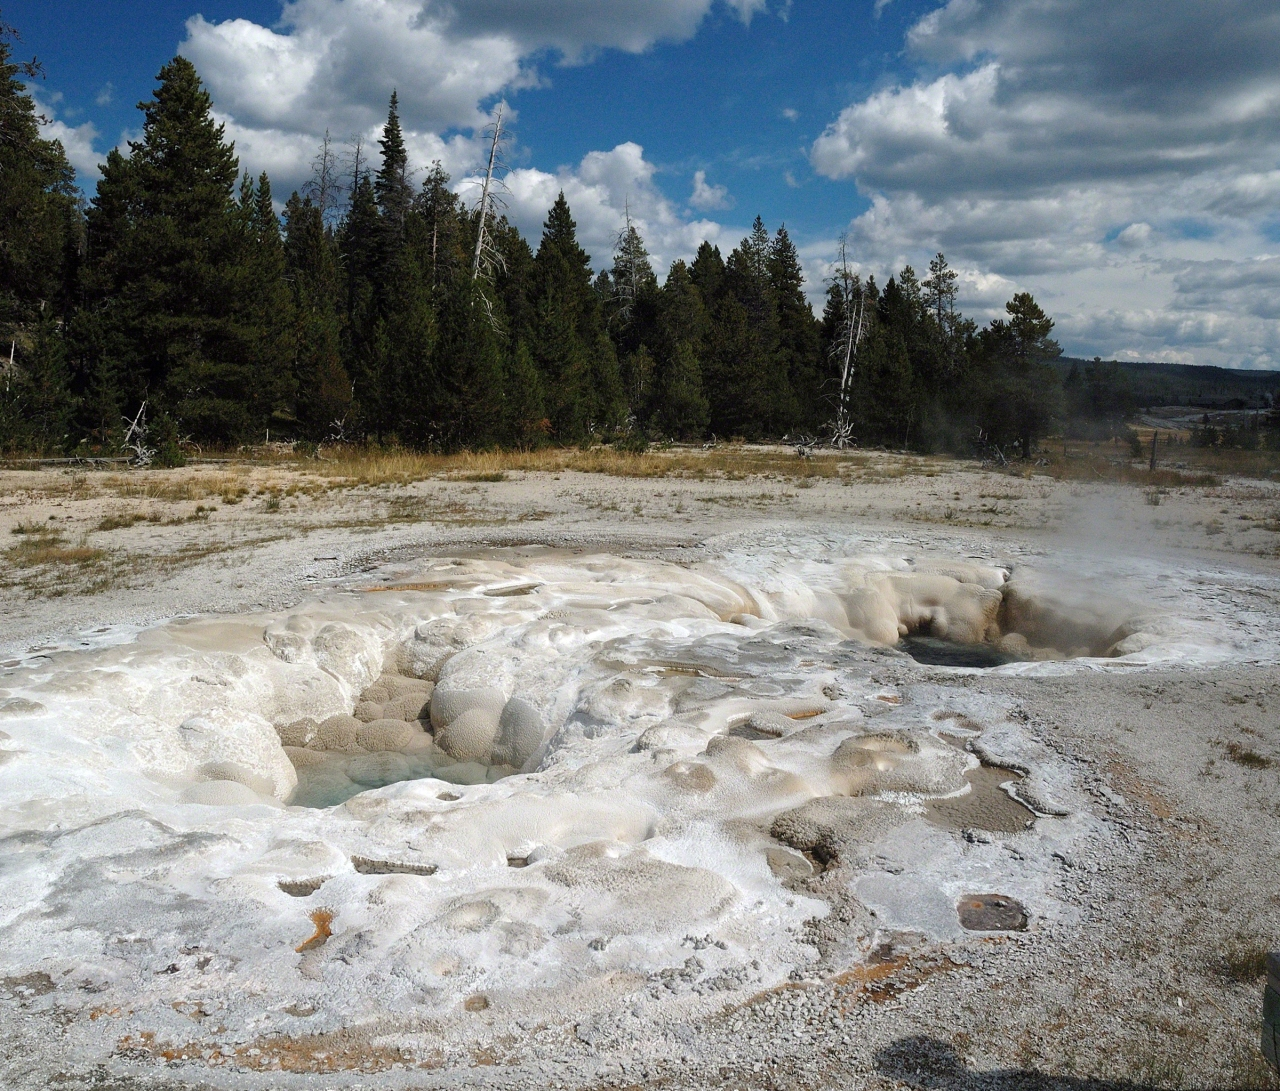 C507-Yellowstone-1287_stitch